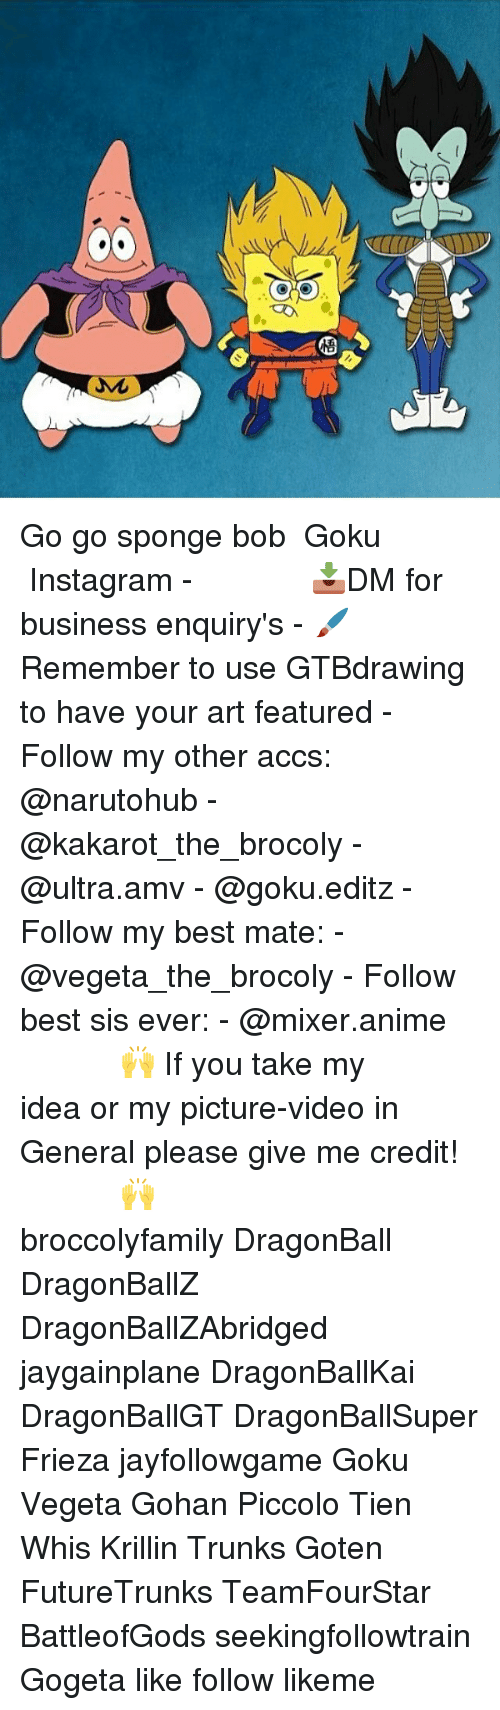 Dragonball, Frieza, and Gohan: M Go go sponge bob ▂▂▂ ♕Goku♕ ▂▂▂ ⠀⠀⠀⠀⠀⠀⠀⠀⠀⠀ 『Instagram』 - 📥DM for business enquiry's - 🖌Remember to use GTBdrawing to have your art featured - Follow my other accs: @narutohub - @kakarot_the_brocoly - @ultra.amv - @goku.editz - Follow my best mate: - @vegeta_the_brocoly - Follow best sis ever: - @mixer.anime ⠀⠀───────⠀☾🙌☽⠀─────── If you take my idea or my picture-video in General please give me credit! ⠀⠀───────⠀☾🙌☽⠀─────── □■■■■■■■■■■■■■■■■□ broccolyfamily DragonBall DragonBallZ DragonBallZAbridged jaygainplane DragonBallKai DragonBallGT DragonBallSuper Frieza jayfollowgame Goku Vegeta Gohan Piccolo Tien Whis Krillin Trunks Goten FutureTrunks TeamFourStar BattleofGods seekingfollowtrain Gogeta like follow likeme